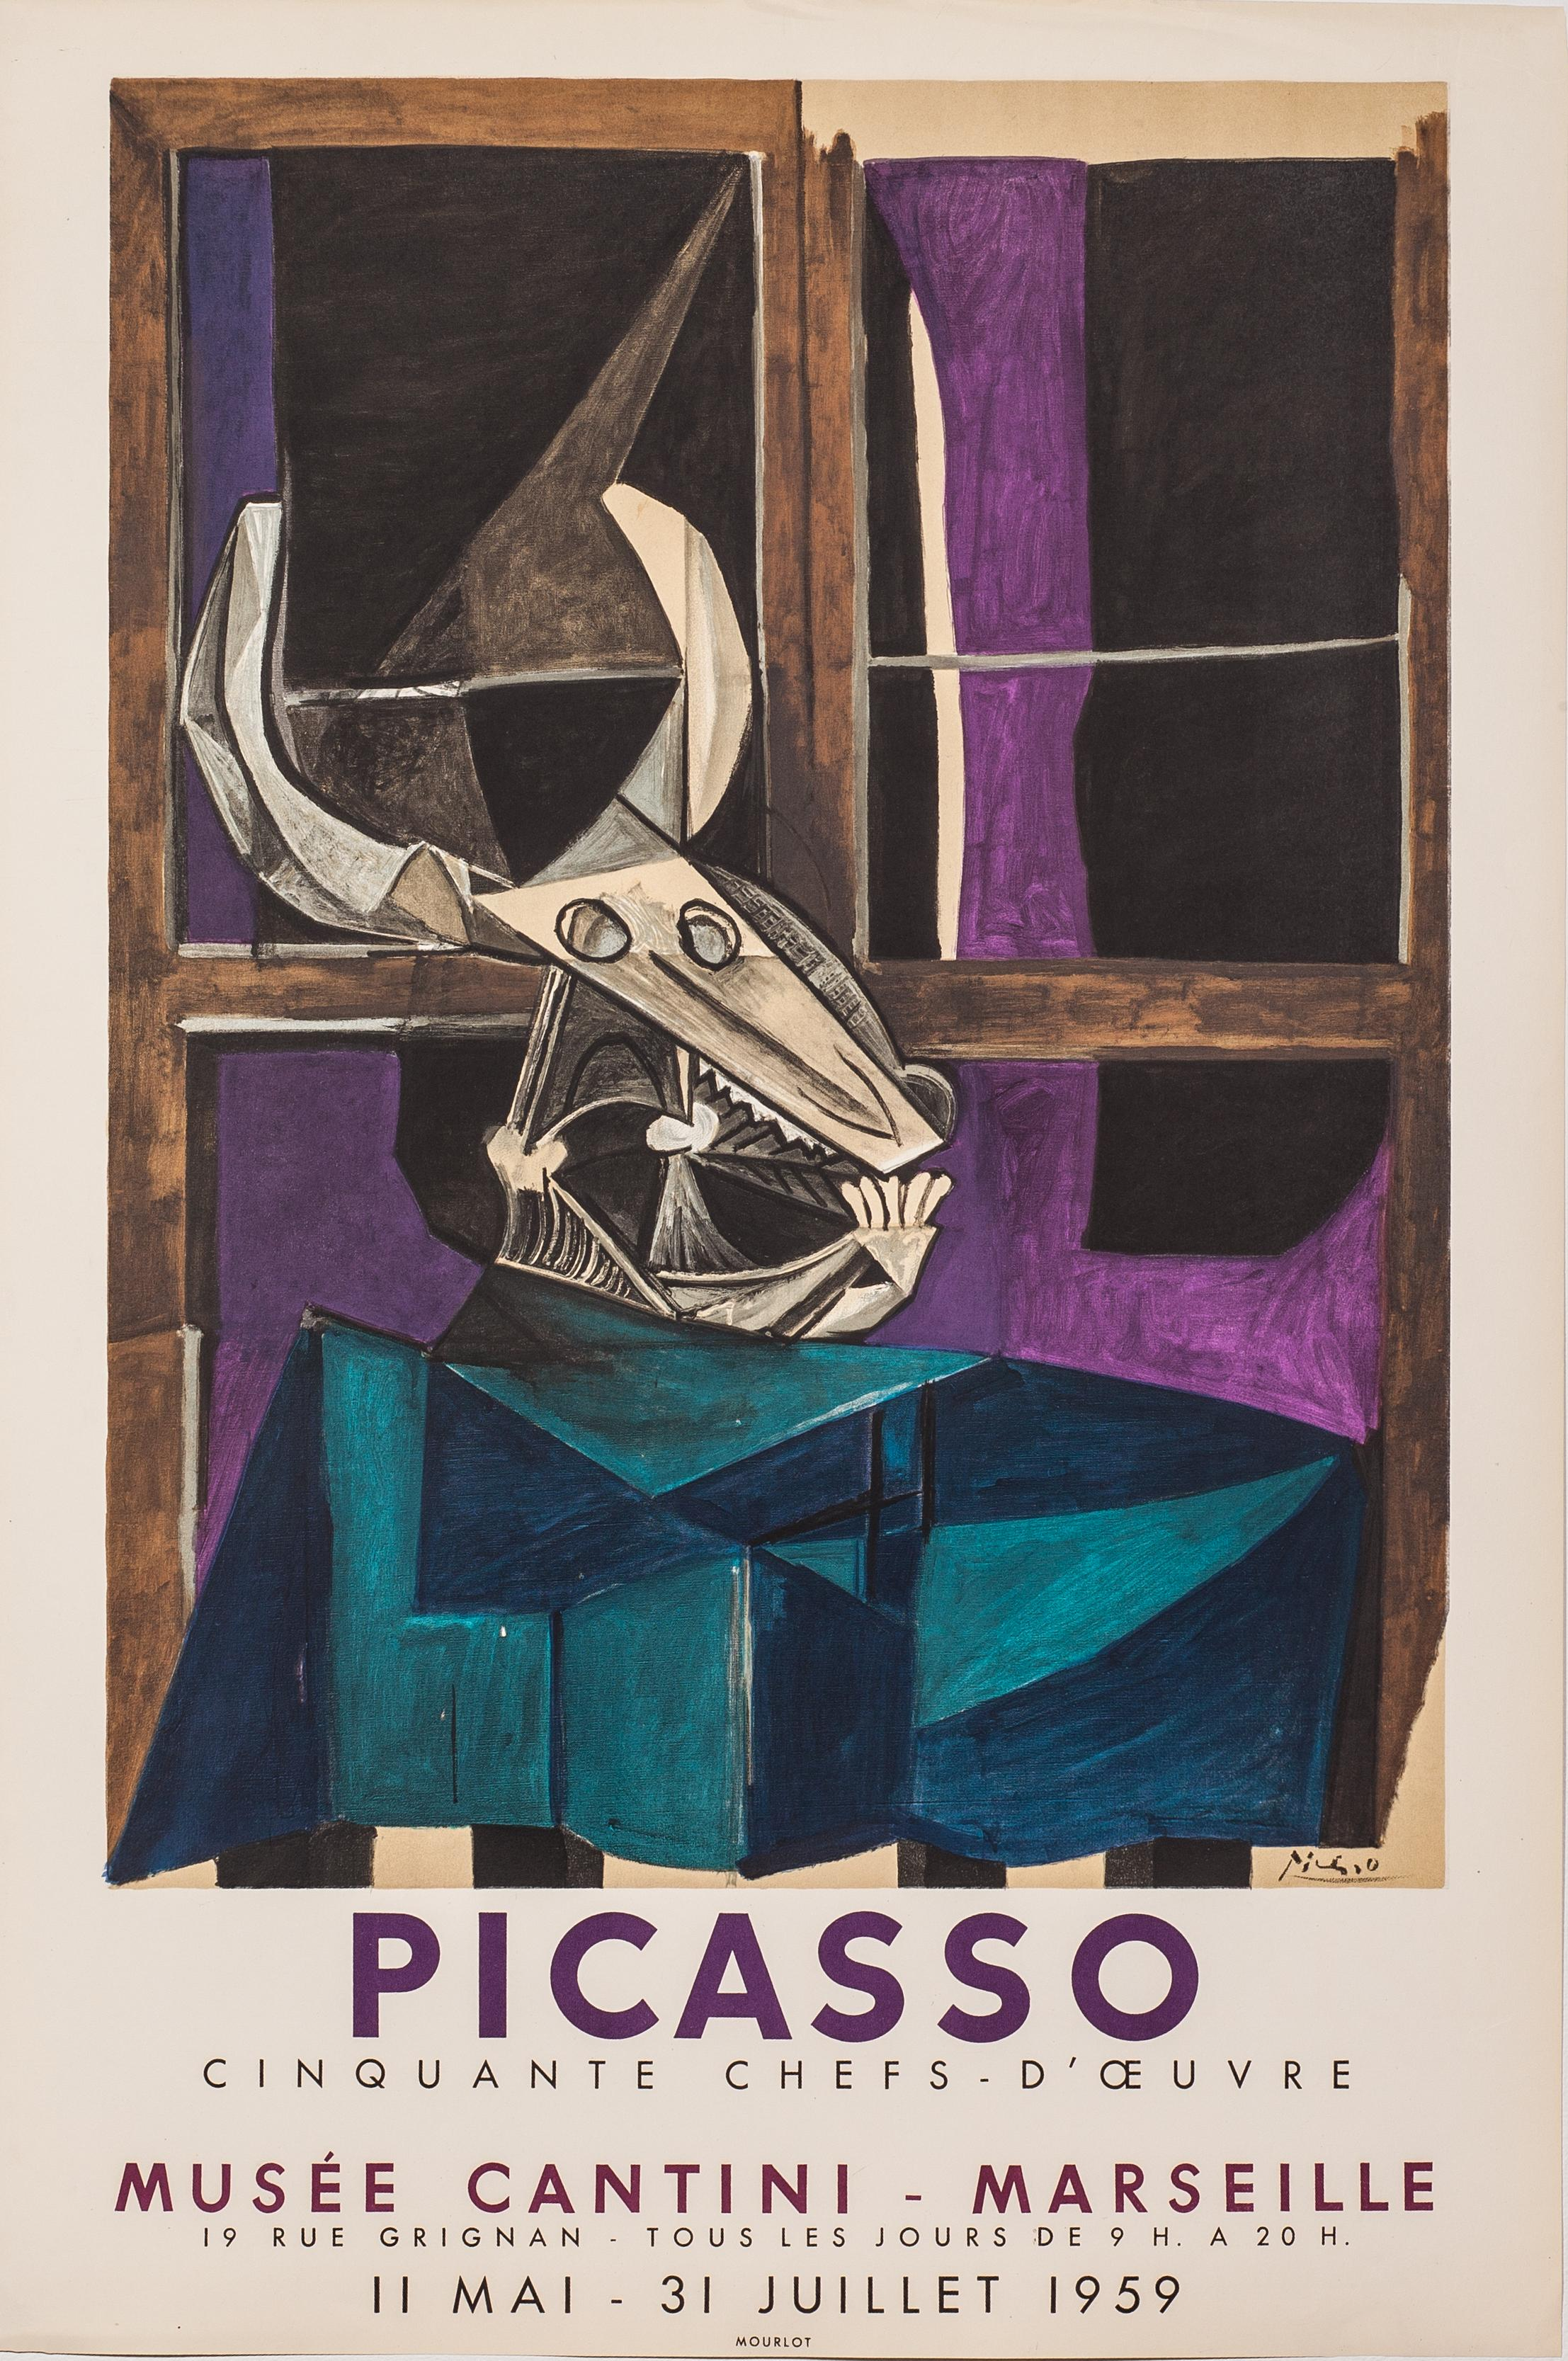 Musee Cantini - Marseille, Pablo Picasso exhibition poster